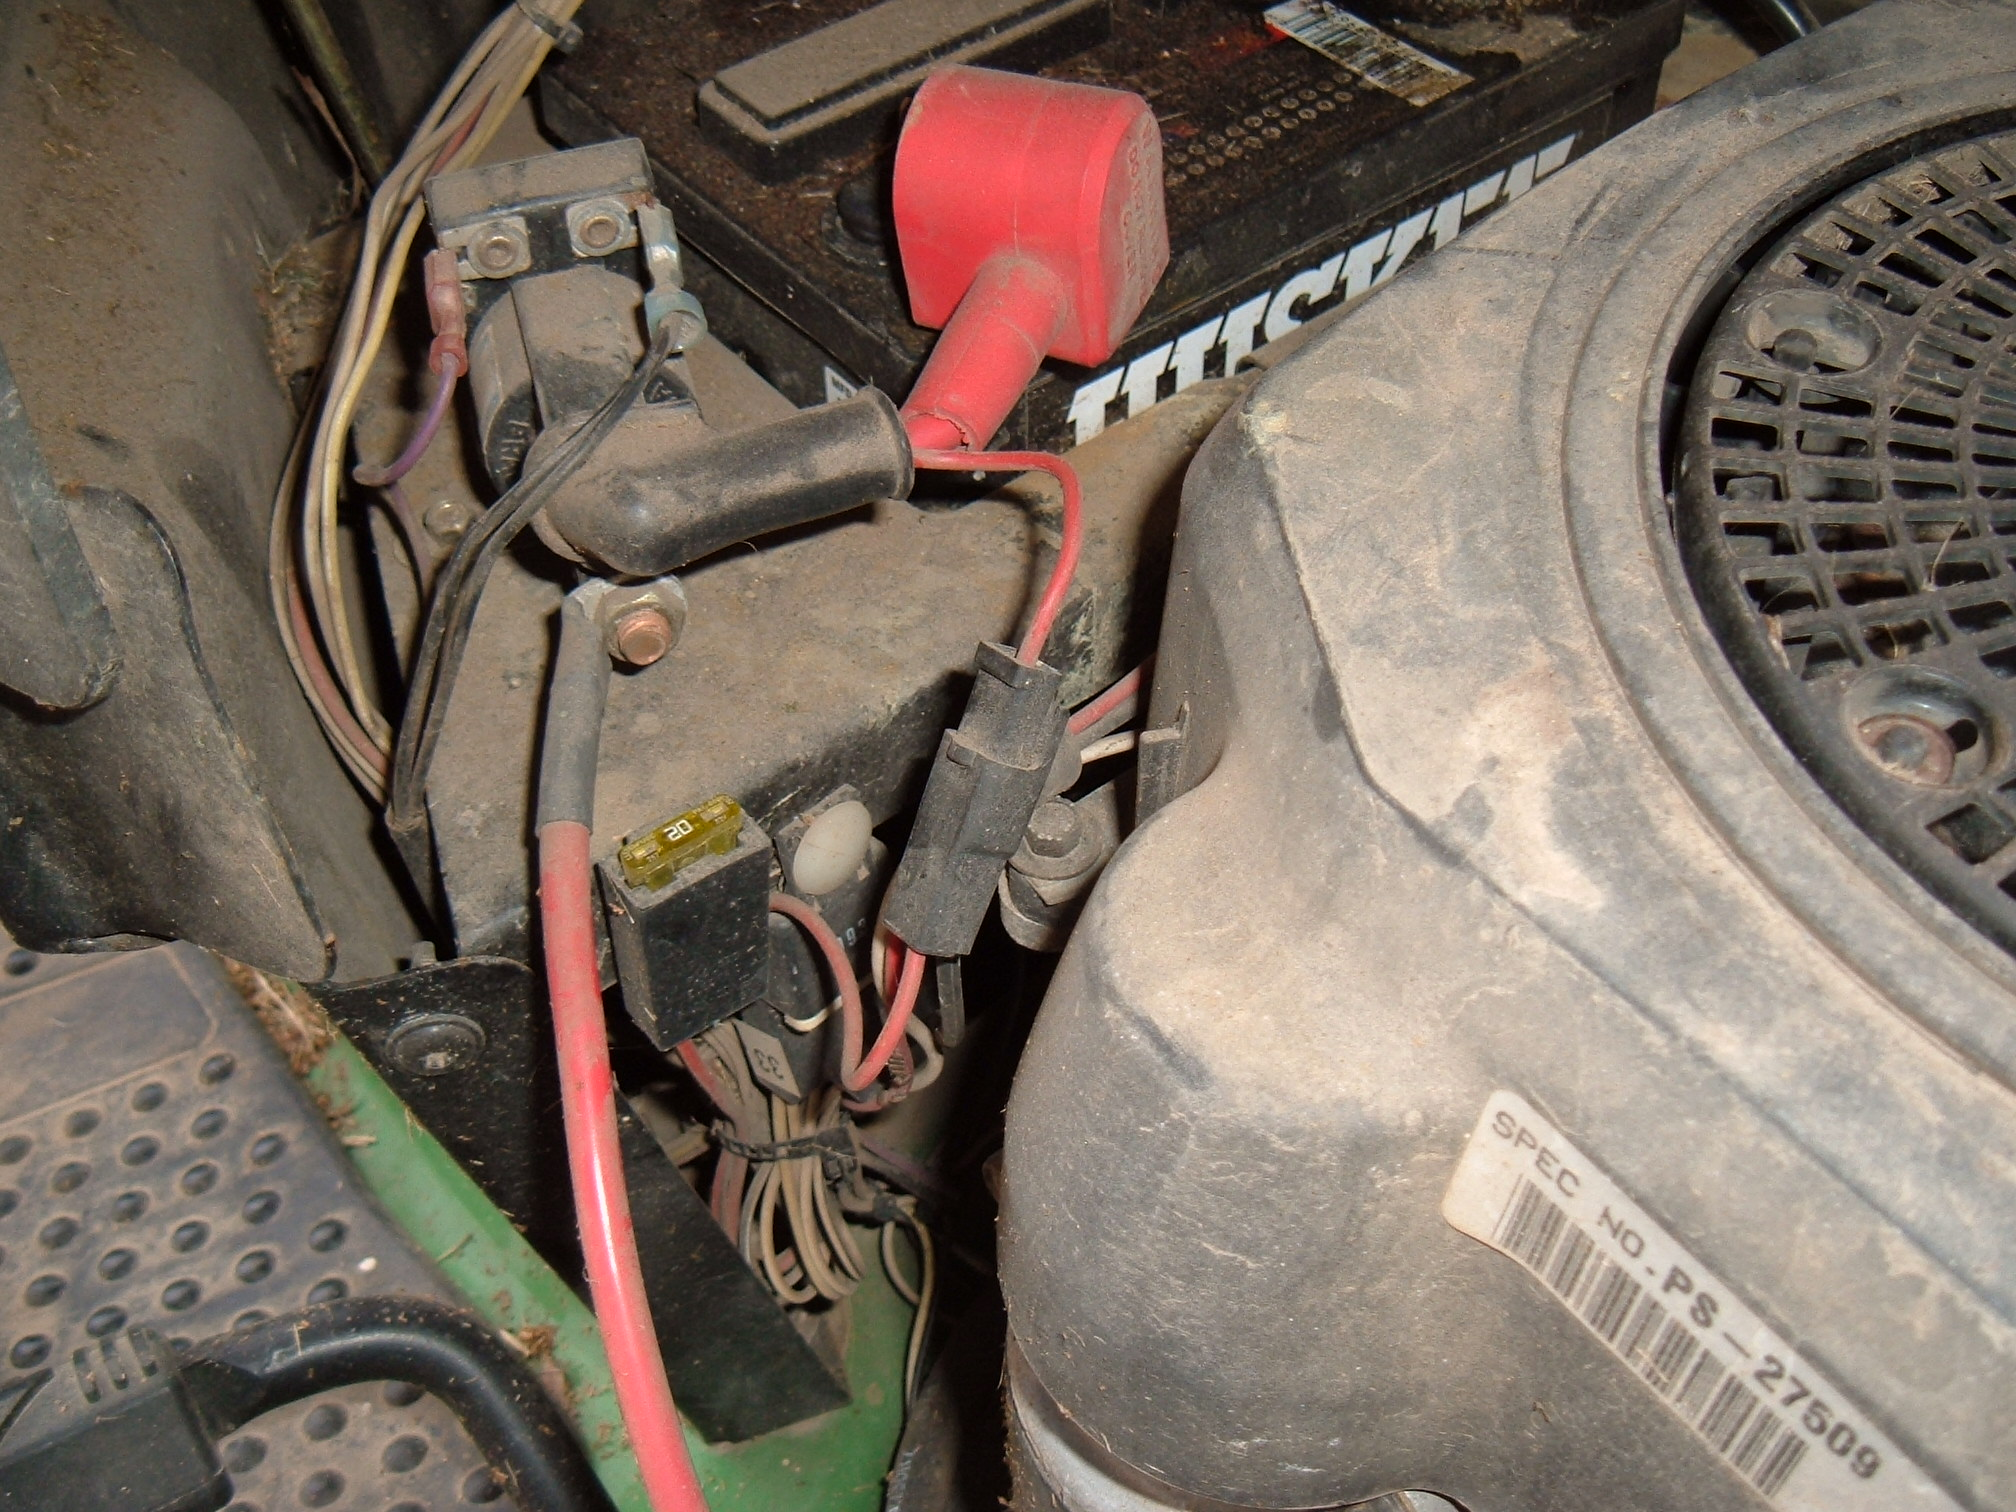 i have a deere l110 tractor  it will not turn over  the